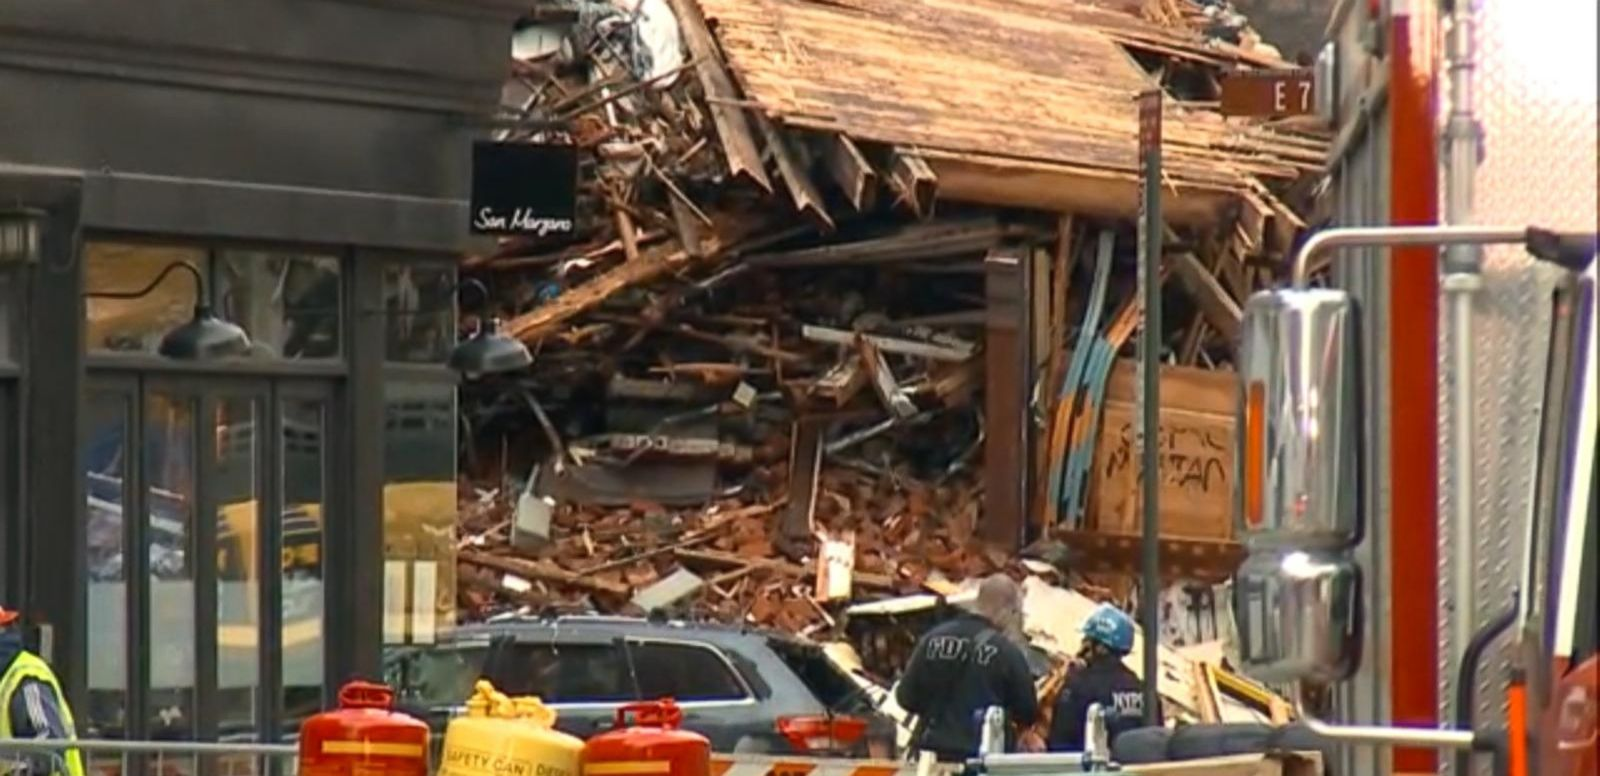 VIDEO: 'Impropriety' May Have Led to New York City Explosion